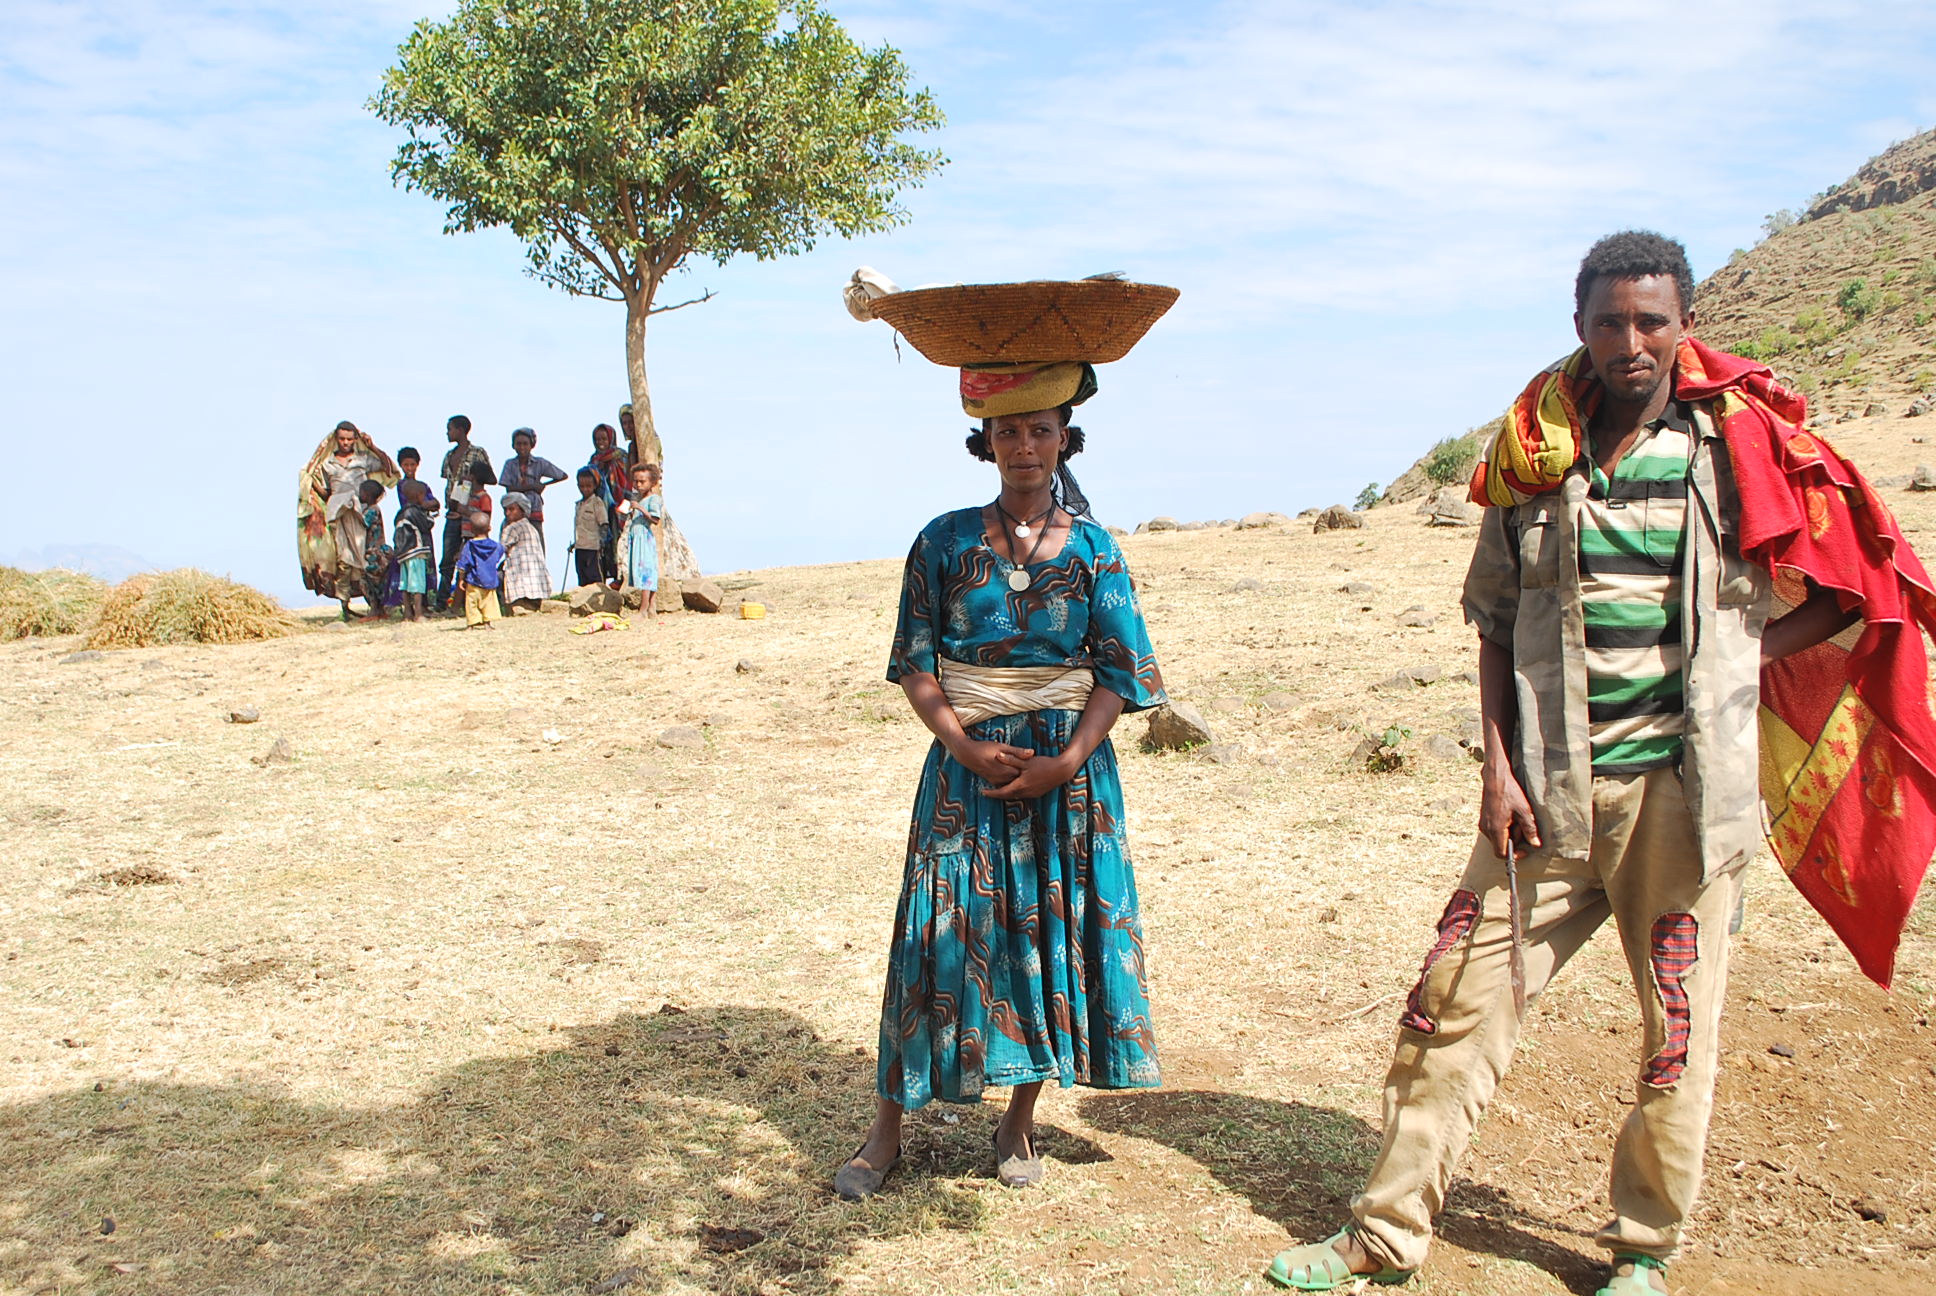 The Ethiopian Qemant of the Agaw in perspective - Ethiopia Insight